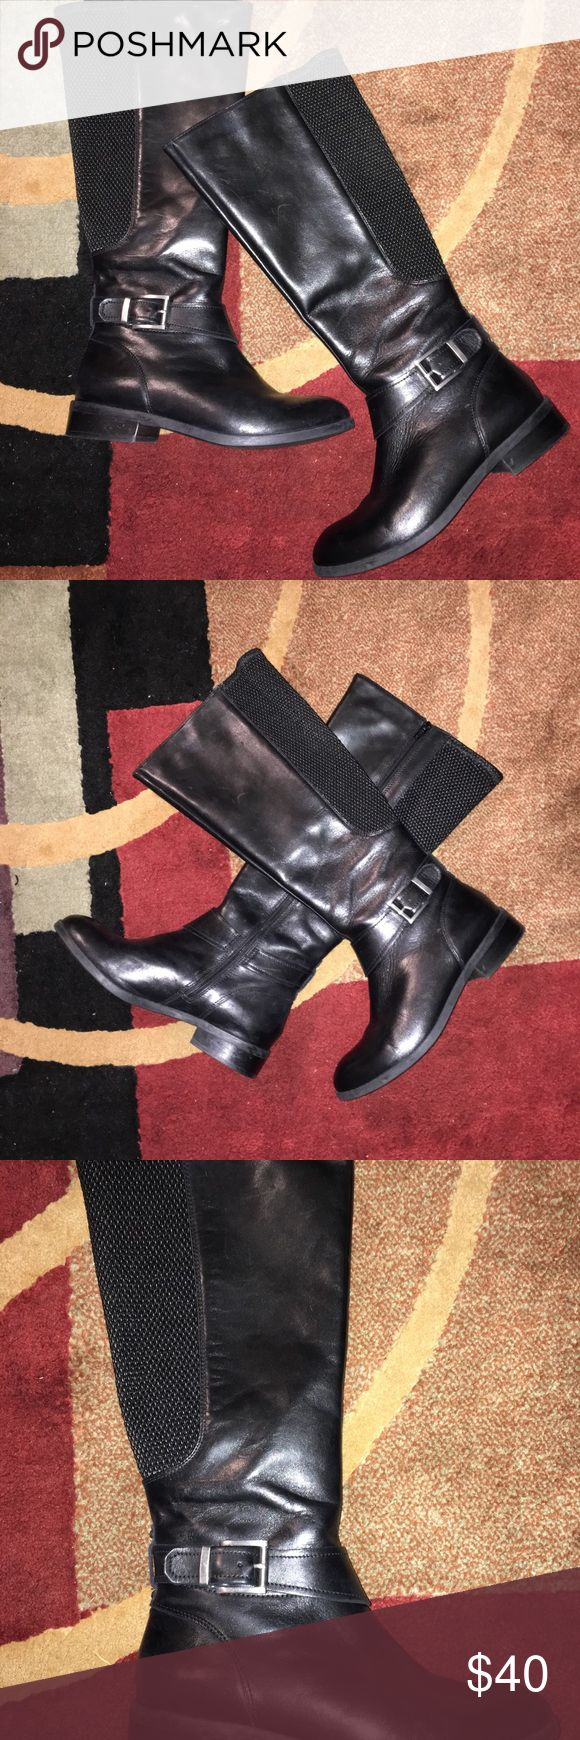 CLARKS LEATHER BOOTS CLARKS BLACK UPPER LEATHER BOOTS WITH BUCKLE ACCENT N RUBBER STRETCHY BACKING PERFECT FOR LADIES WITH BIG CALVES EXCELLENT CONDITION WORN COUPLE TIMES SIZE 7.5M Clarks Shoes Winter & Rain Boots